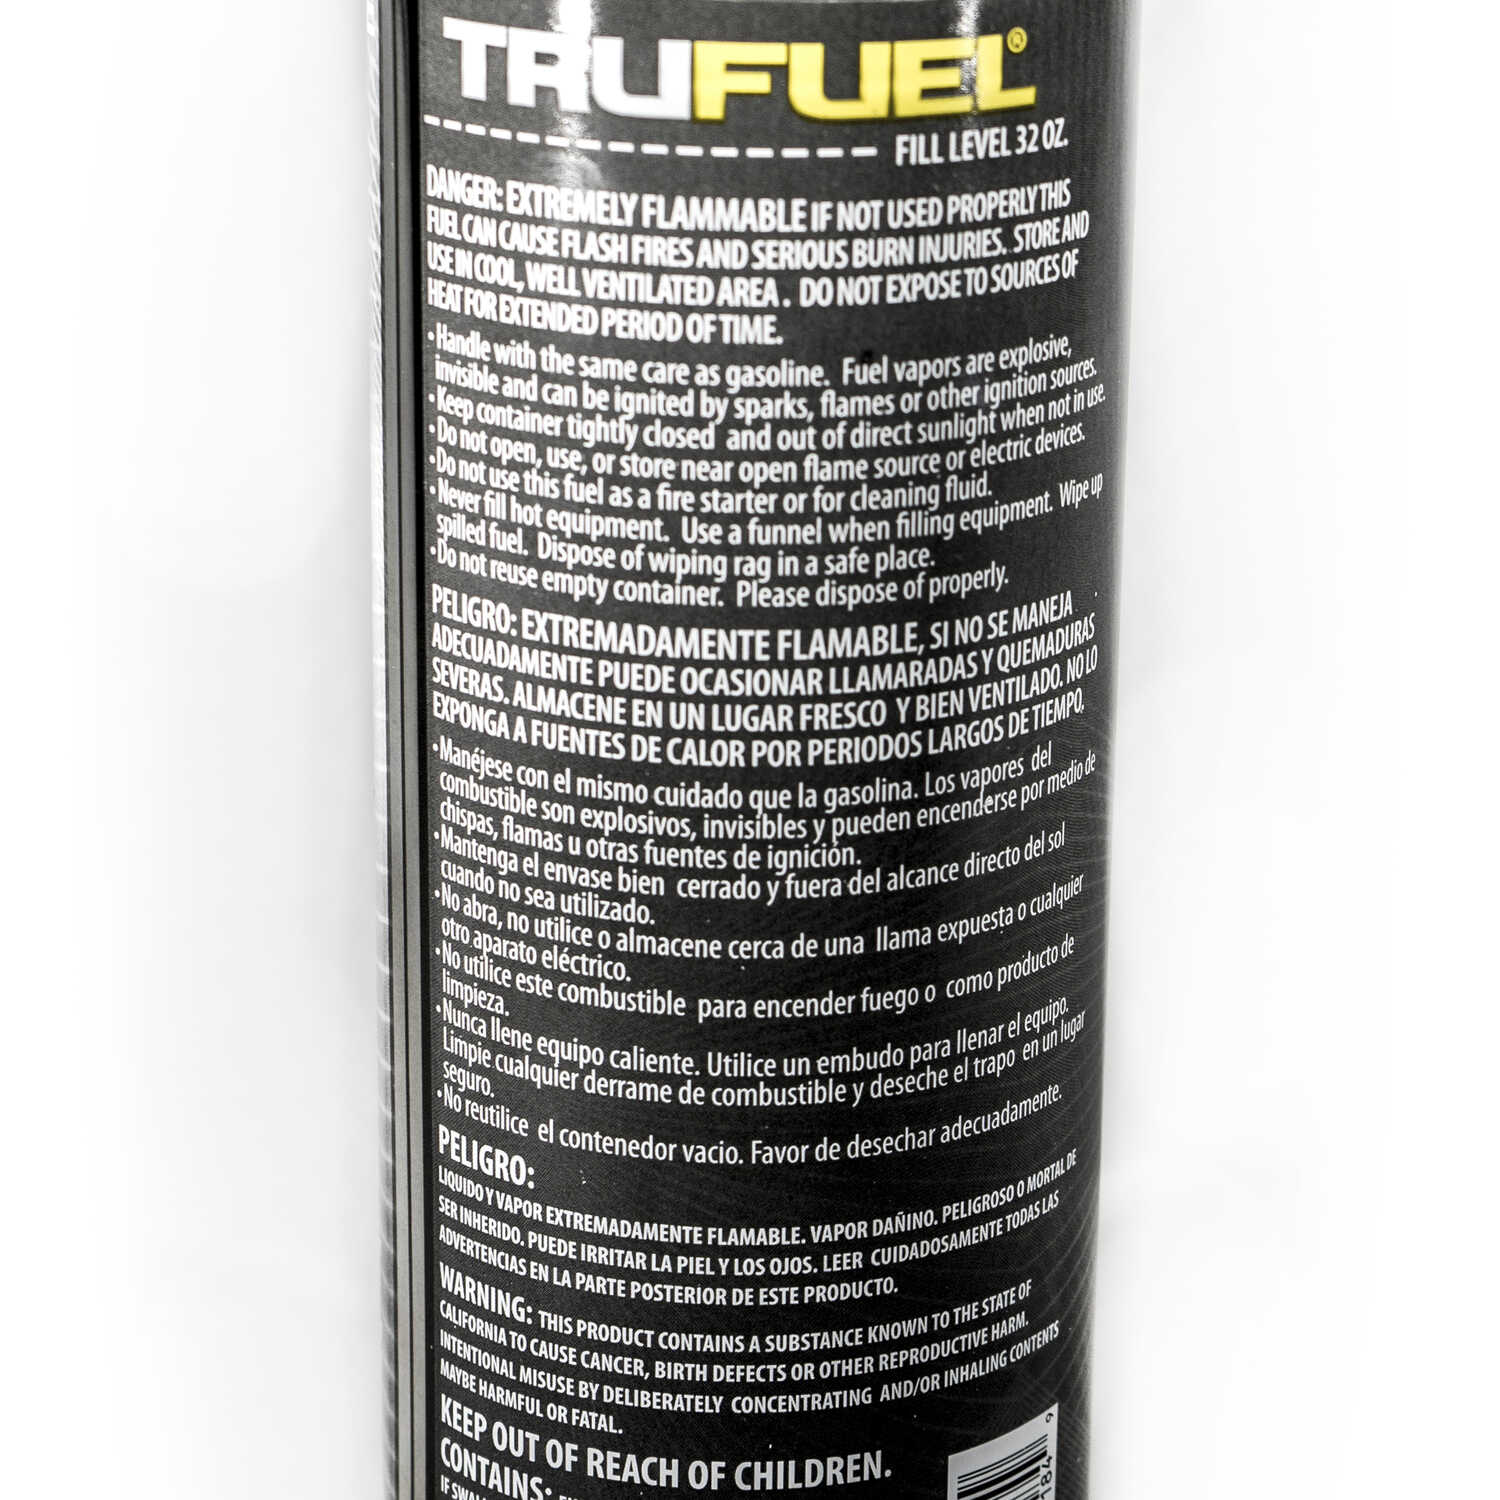 TruFuel 4 Cycle Engine Premium 4-Cycle Engineered Fuel 32 oz